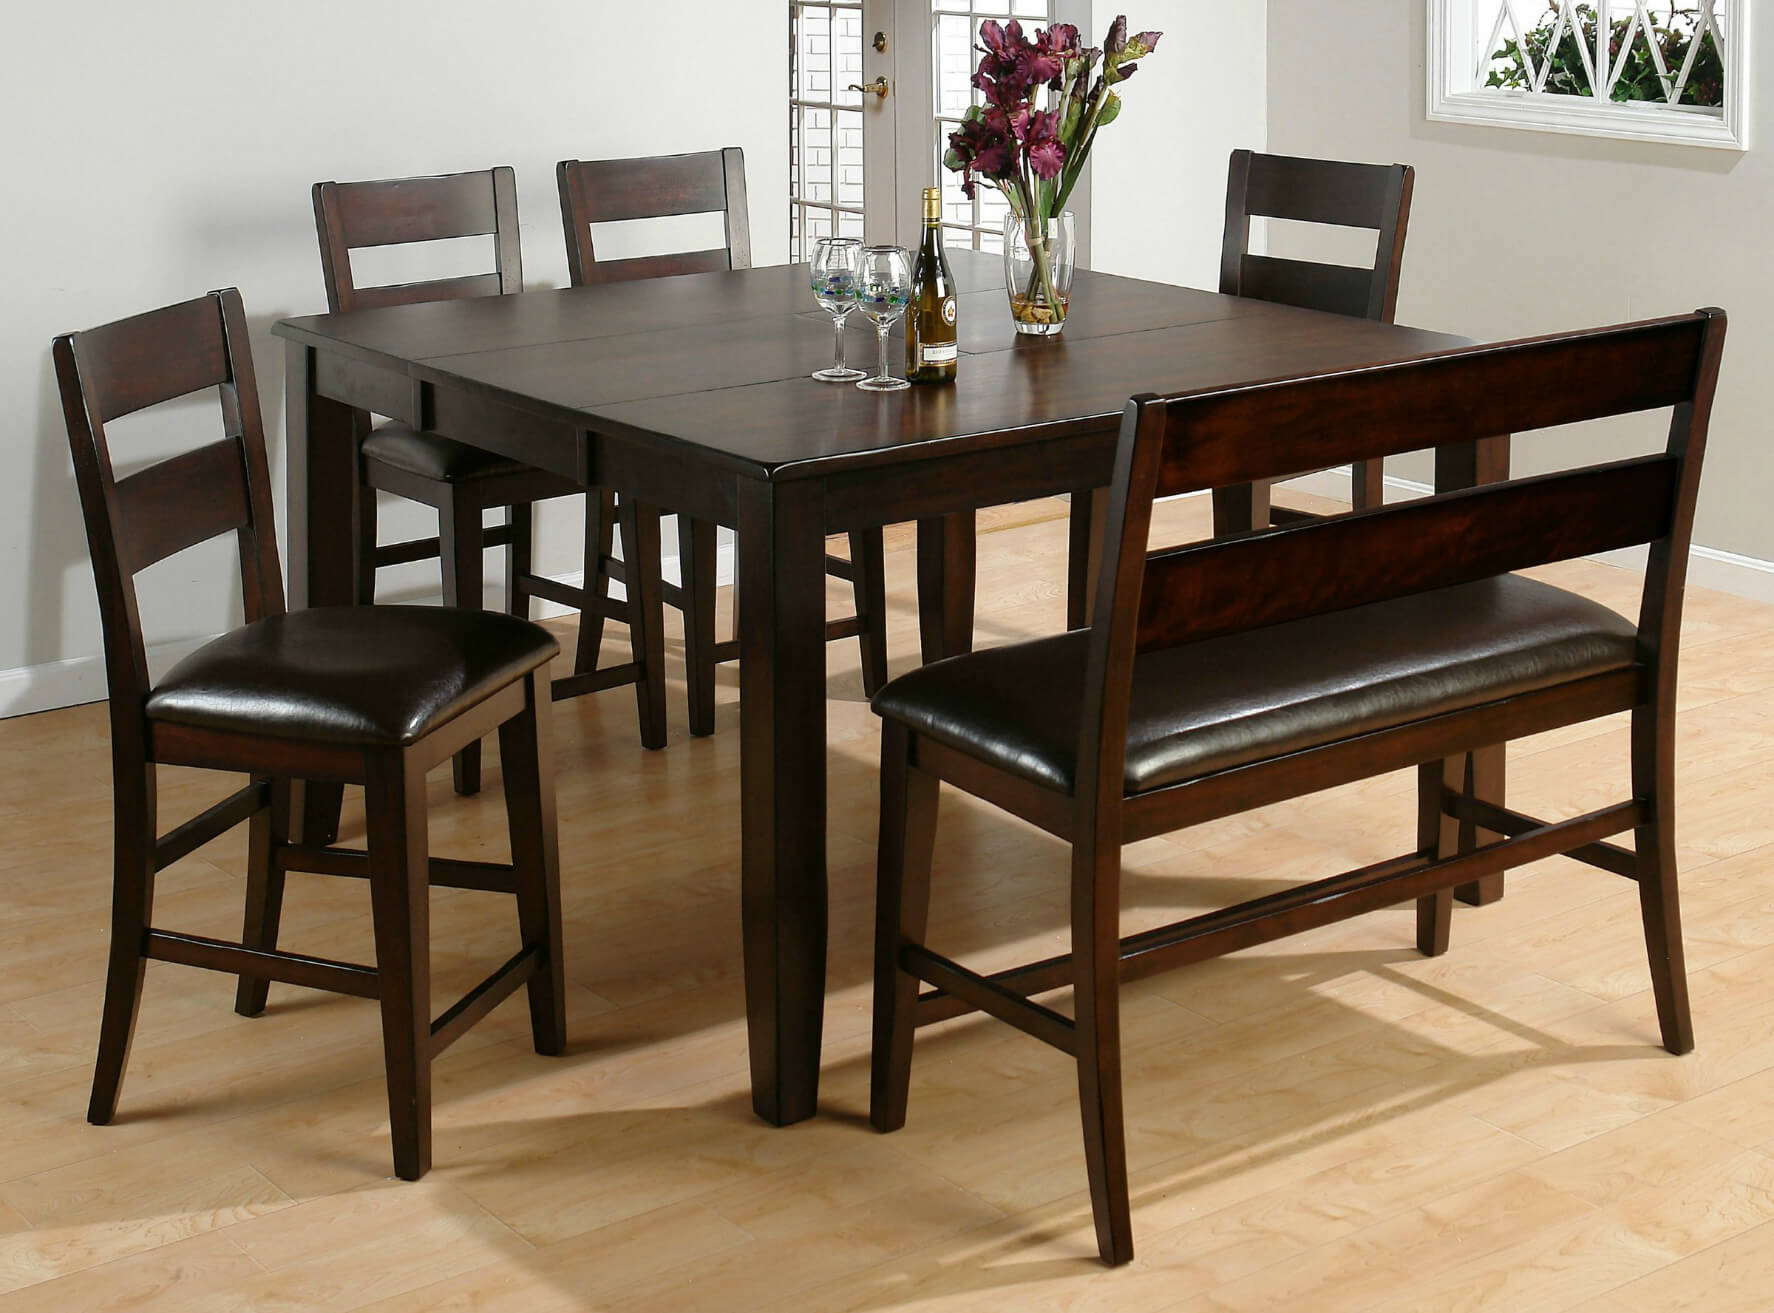 Small kitchen table set - Here S A Counter Height Square Dining Room Table With Bench Moreover The Bench Includes